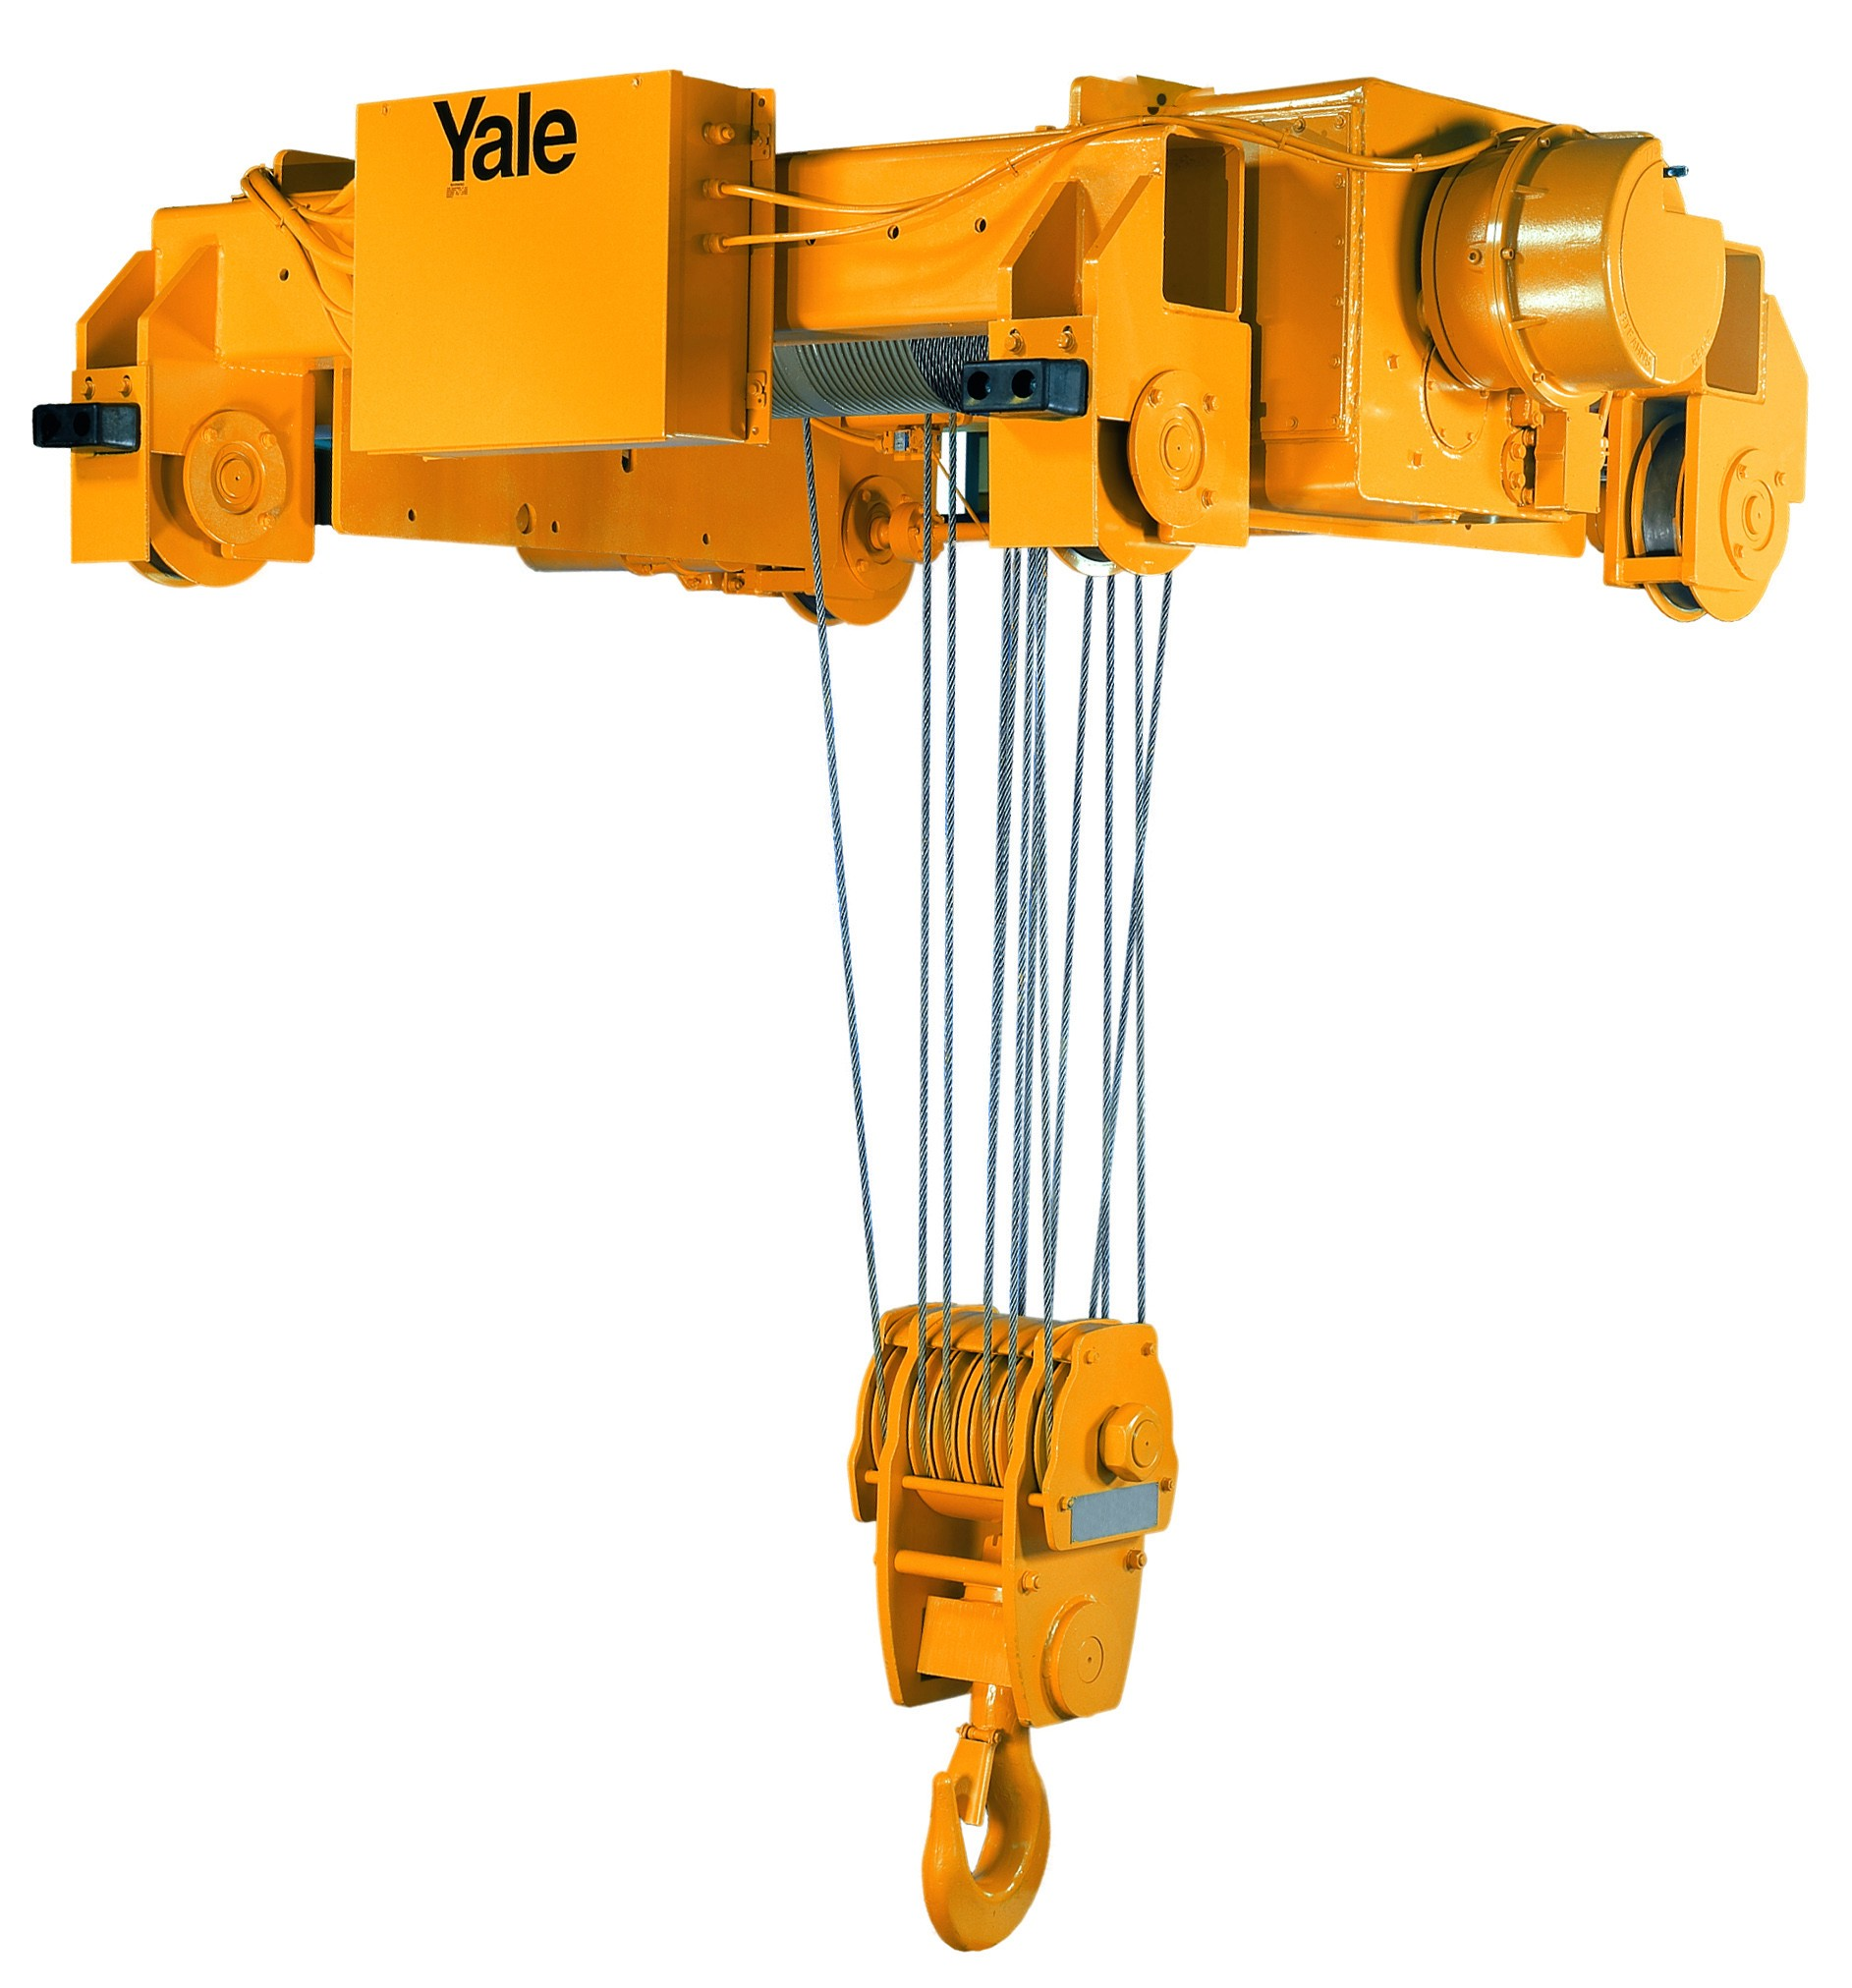 YALE - Cable King 20 Ton Electric Wire Rope Hoist (23fpm & 75' Lift Double Reeve)